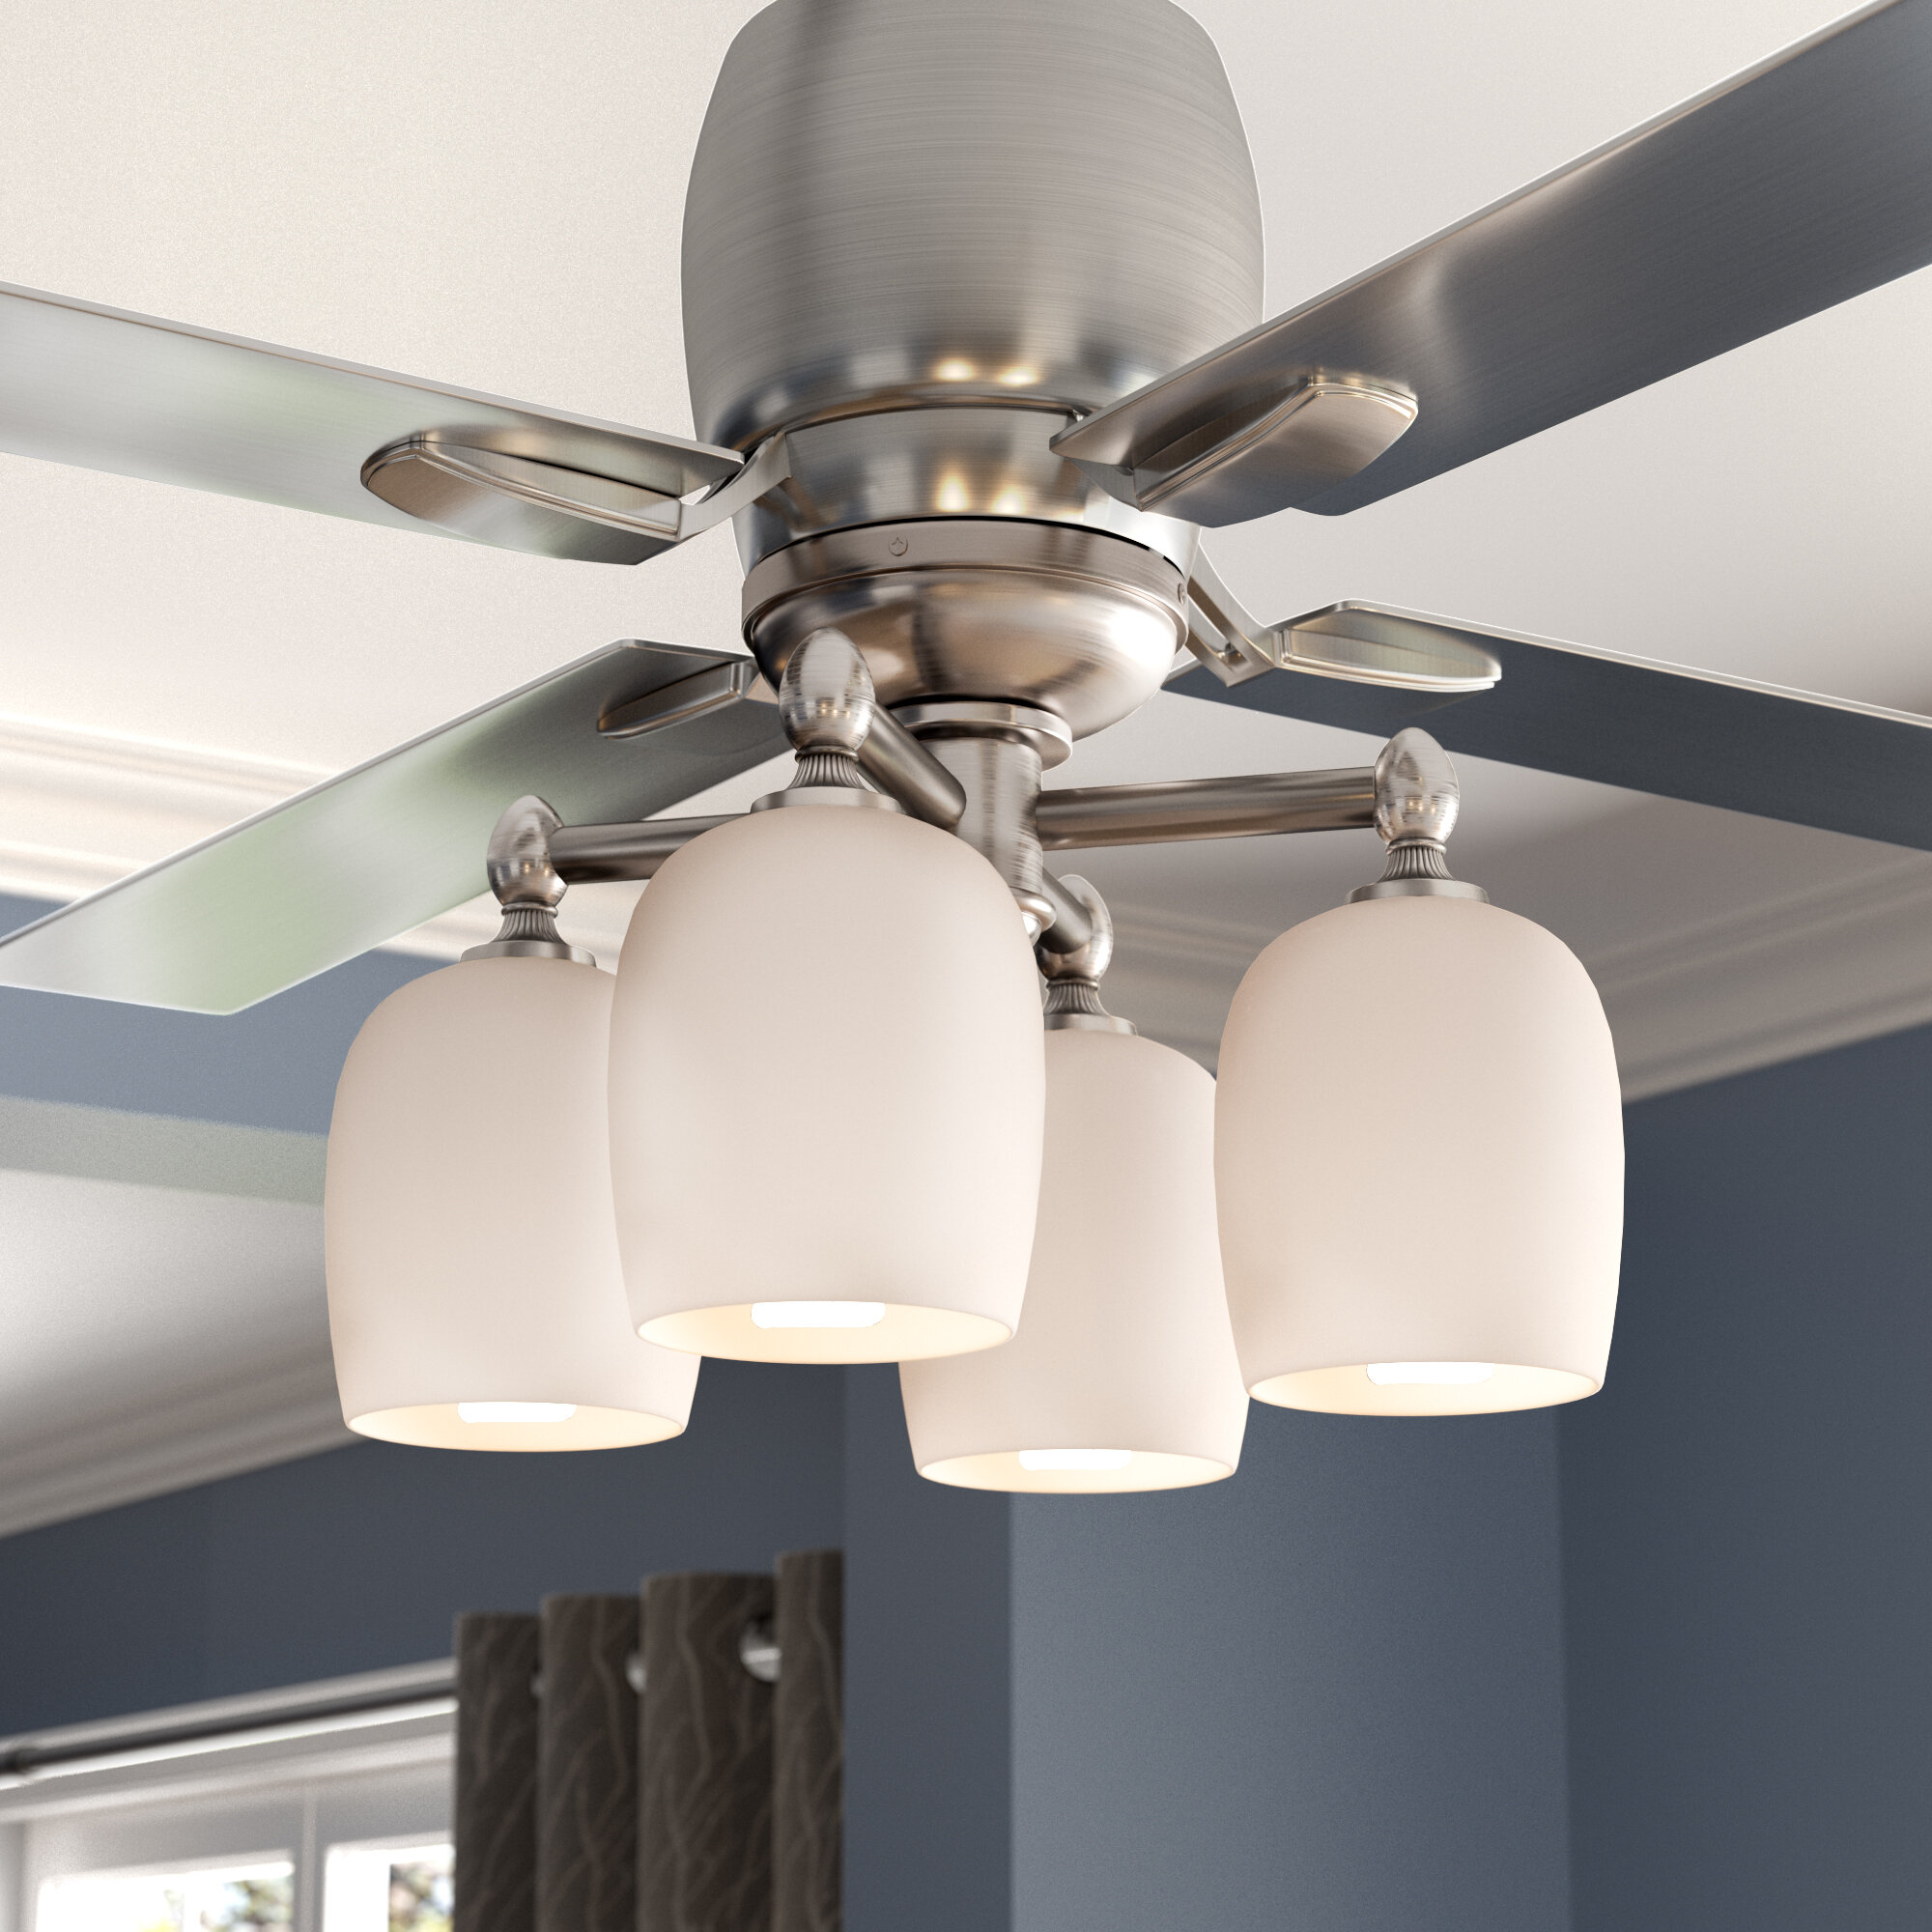 Darby Home Co 4 Light Branched Ceiling Fan Kit Reviews Wayfair